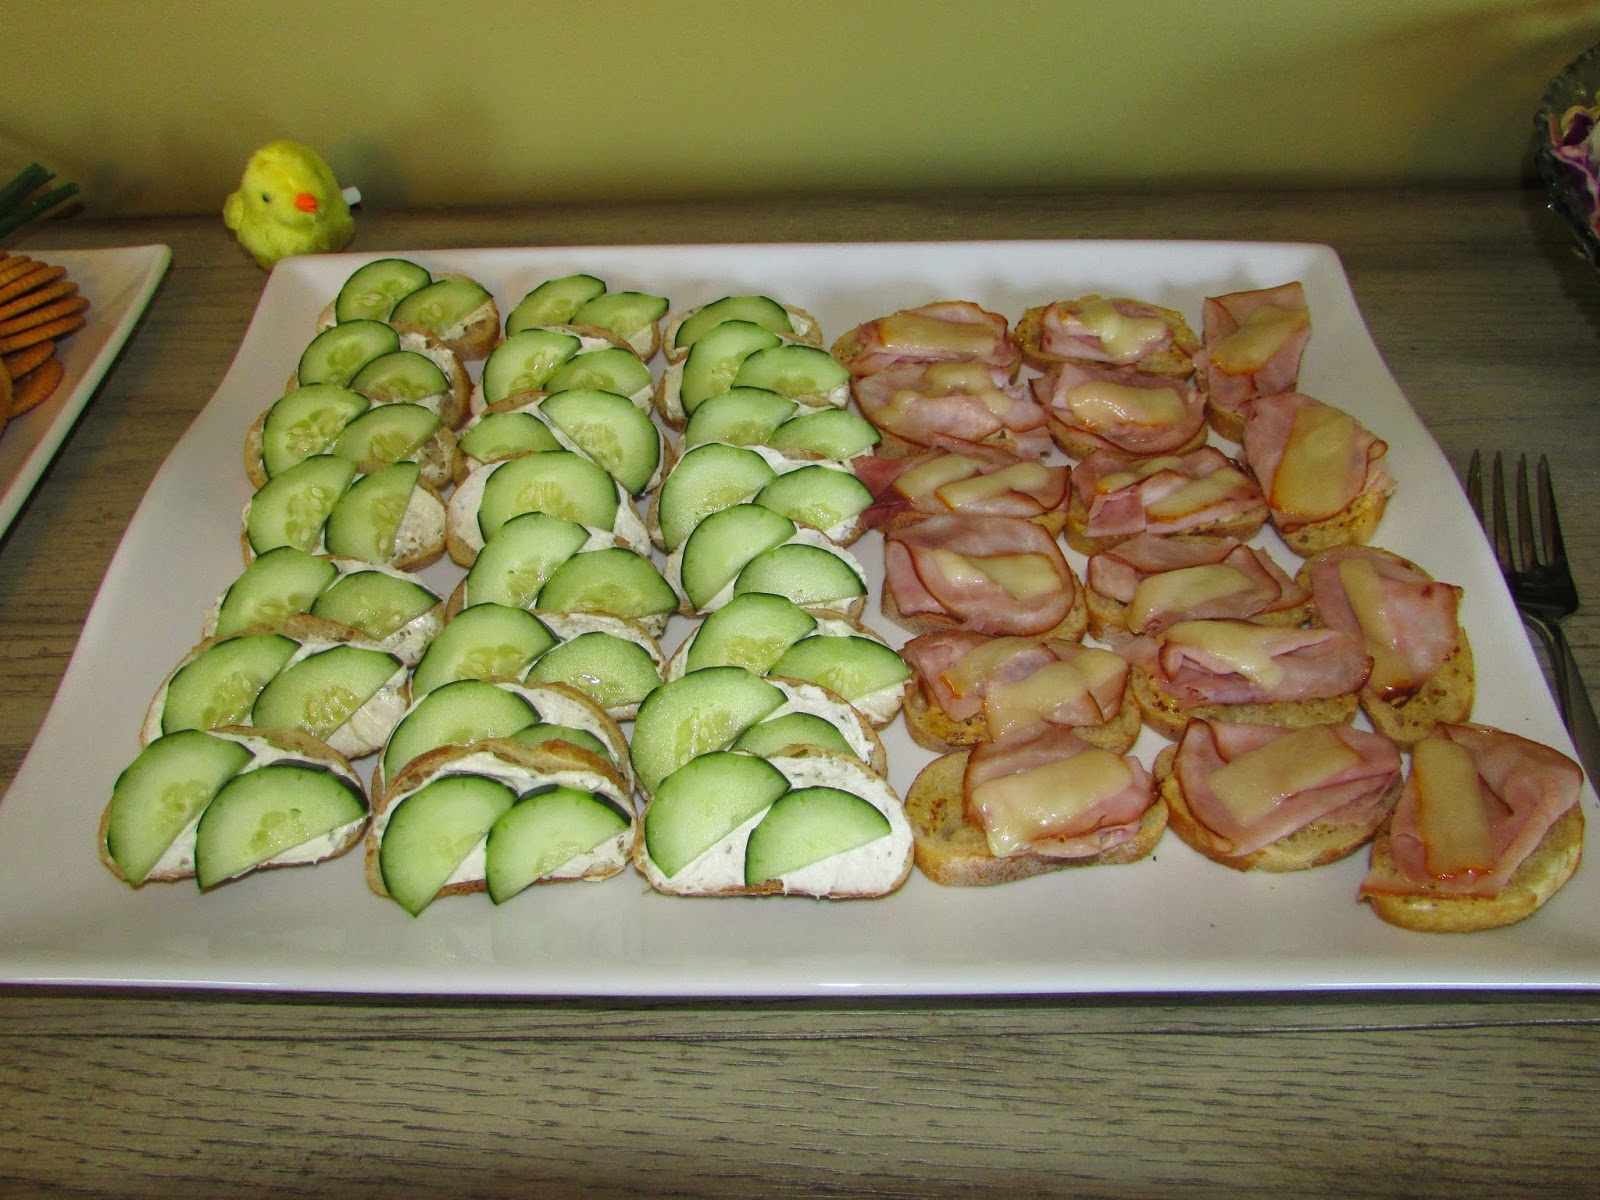 Tray of open faced cucumber sandwiches and ham and cheese crostini.